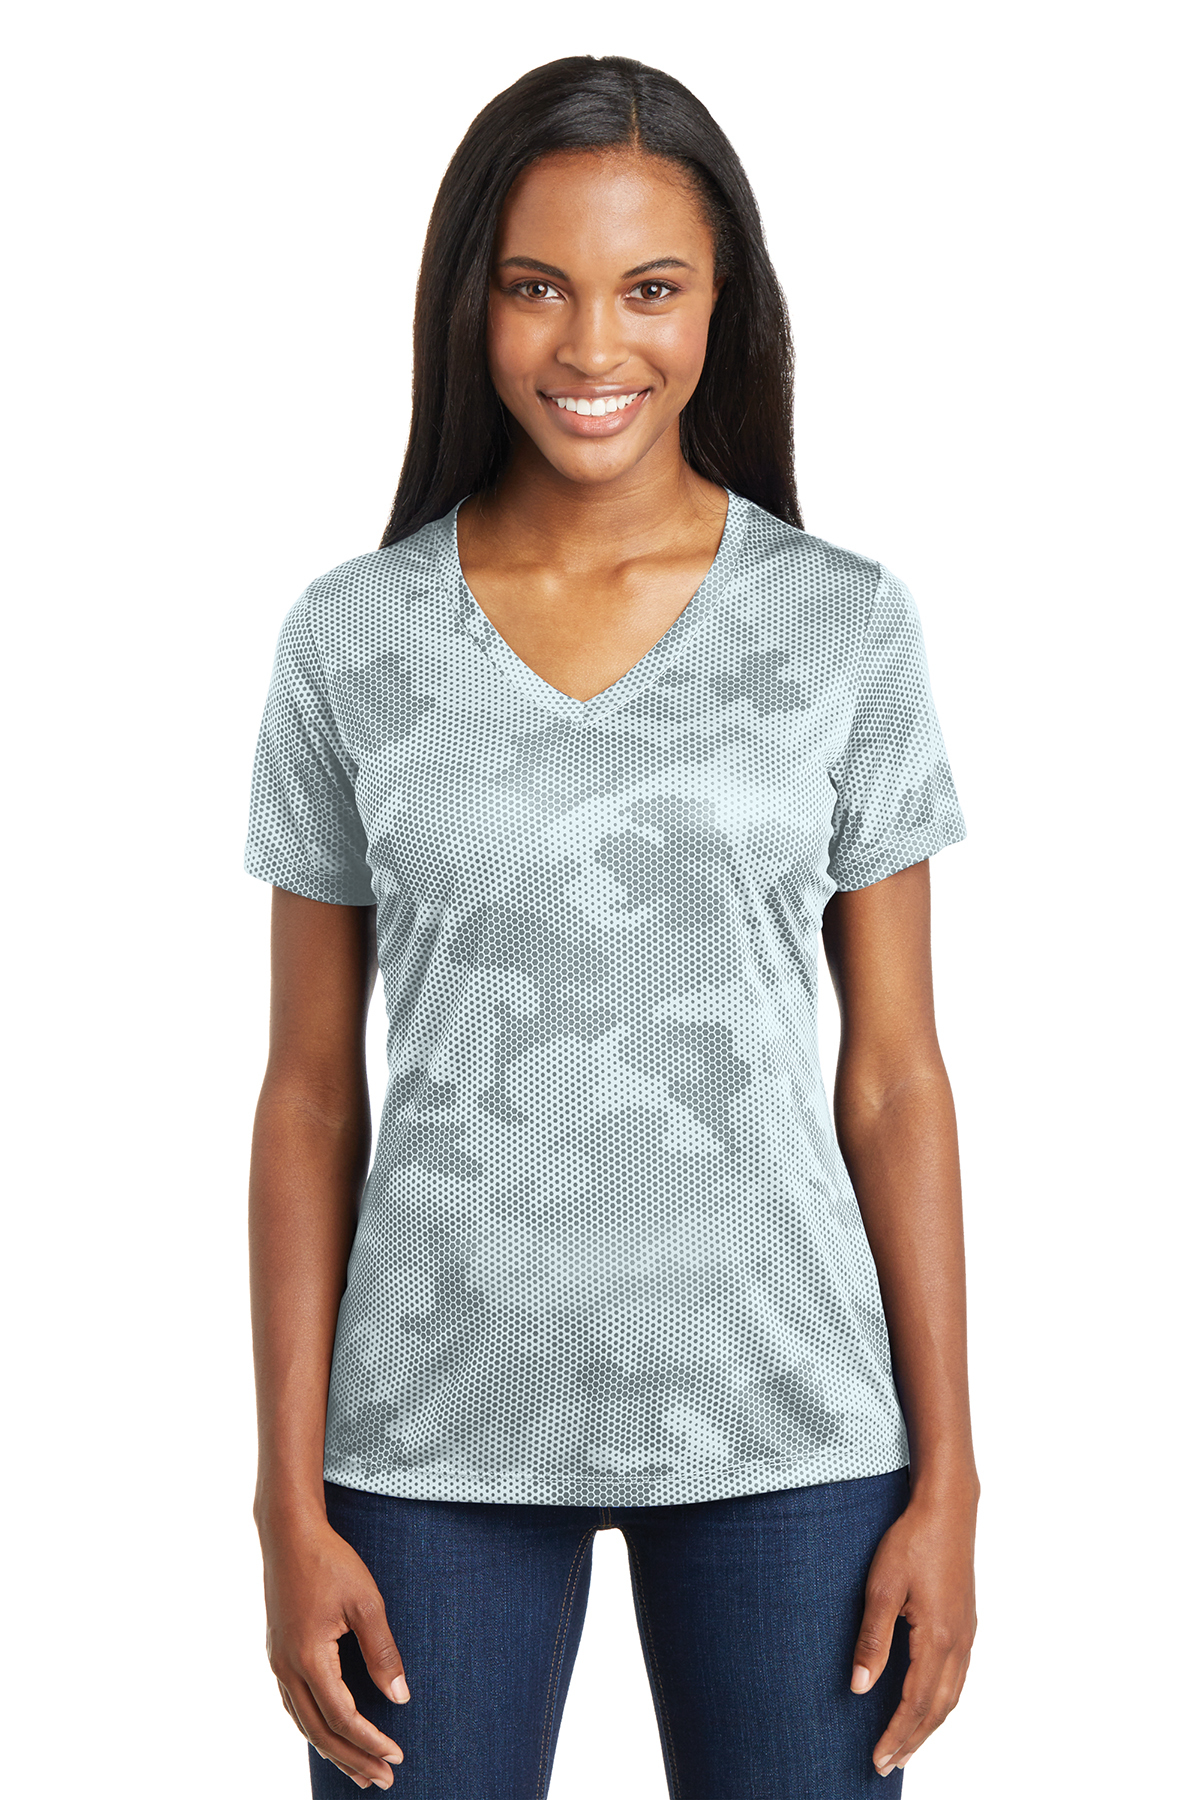 Sport Tek Ladies Camohex V Neck Tee Performance T Shirts Sport Tek Camouflage military tactical uniforms from soviet, russian army, ukrainian bdu and all other armies, paratroopers, spetsnaz and acu. sport tek ladies camohex v neck tee